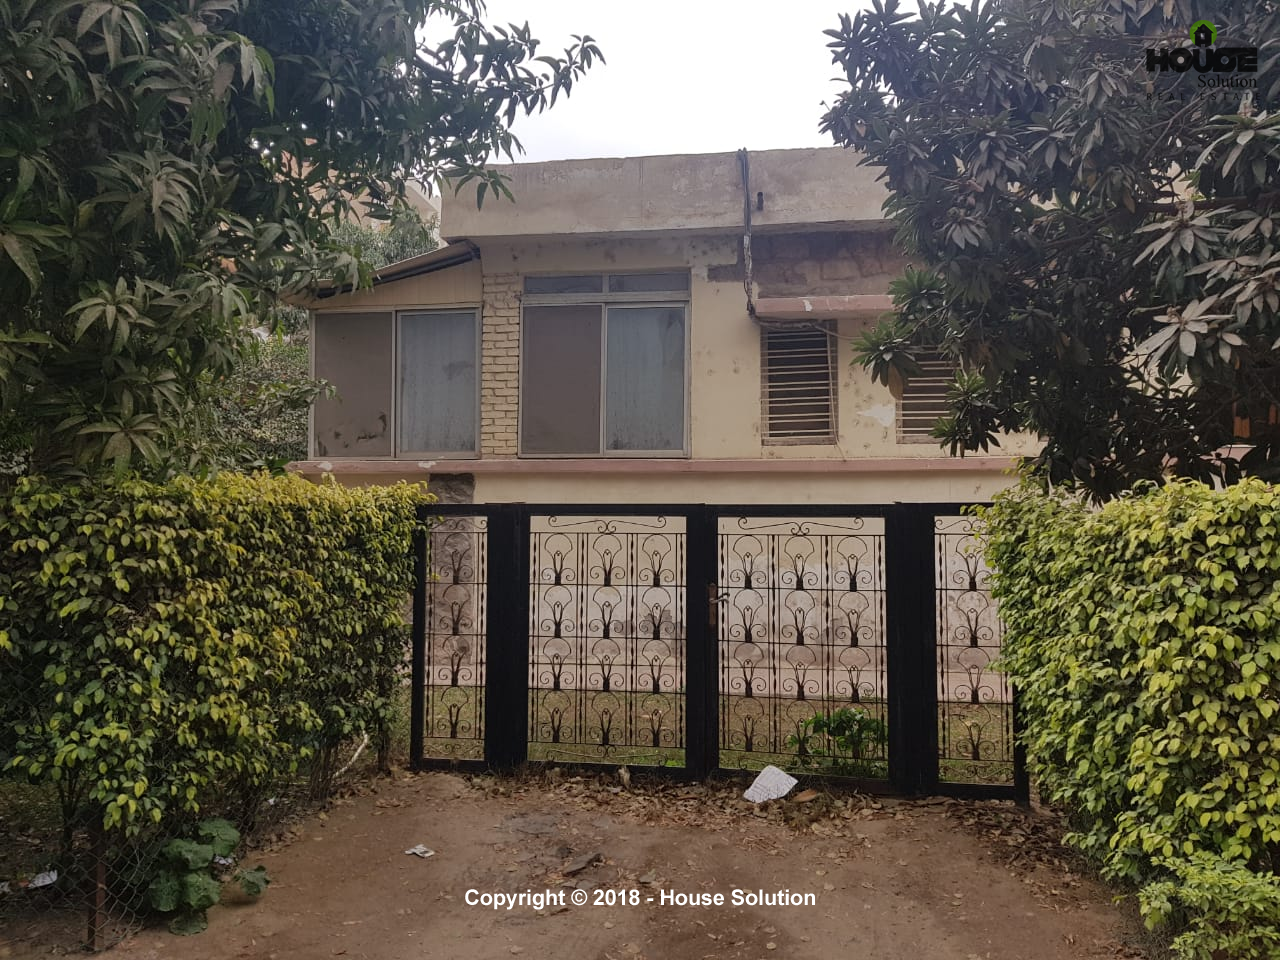 Villas For Sale In Maadi Maadi Degla -#5